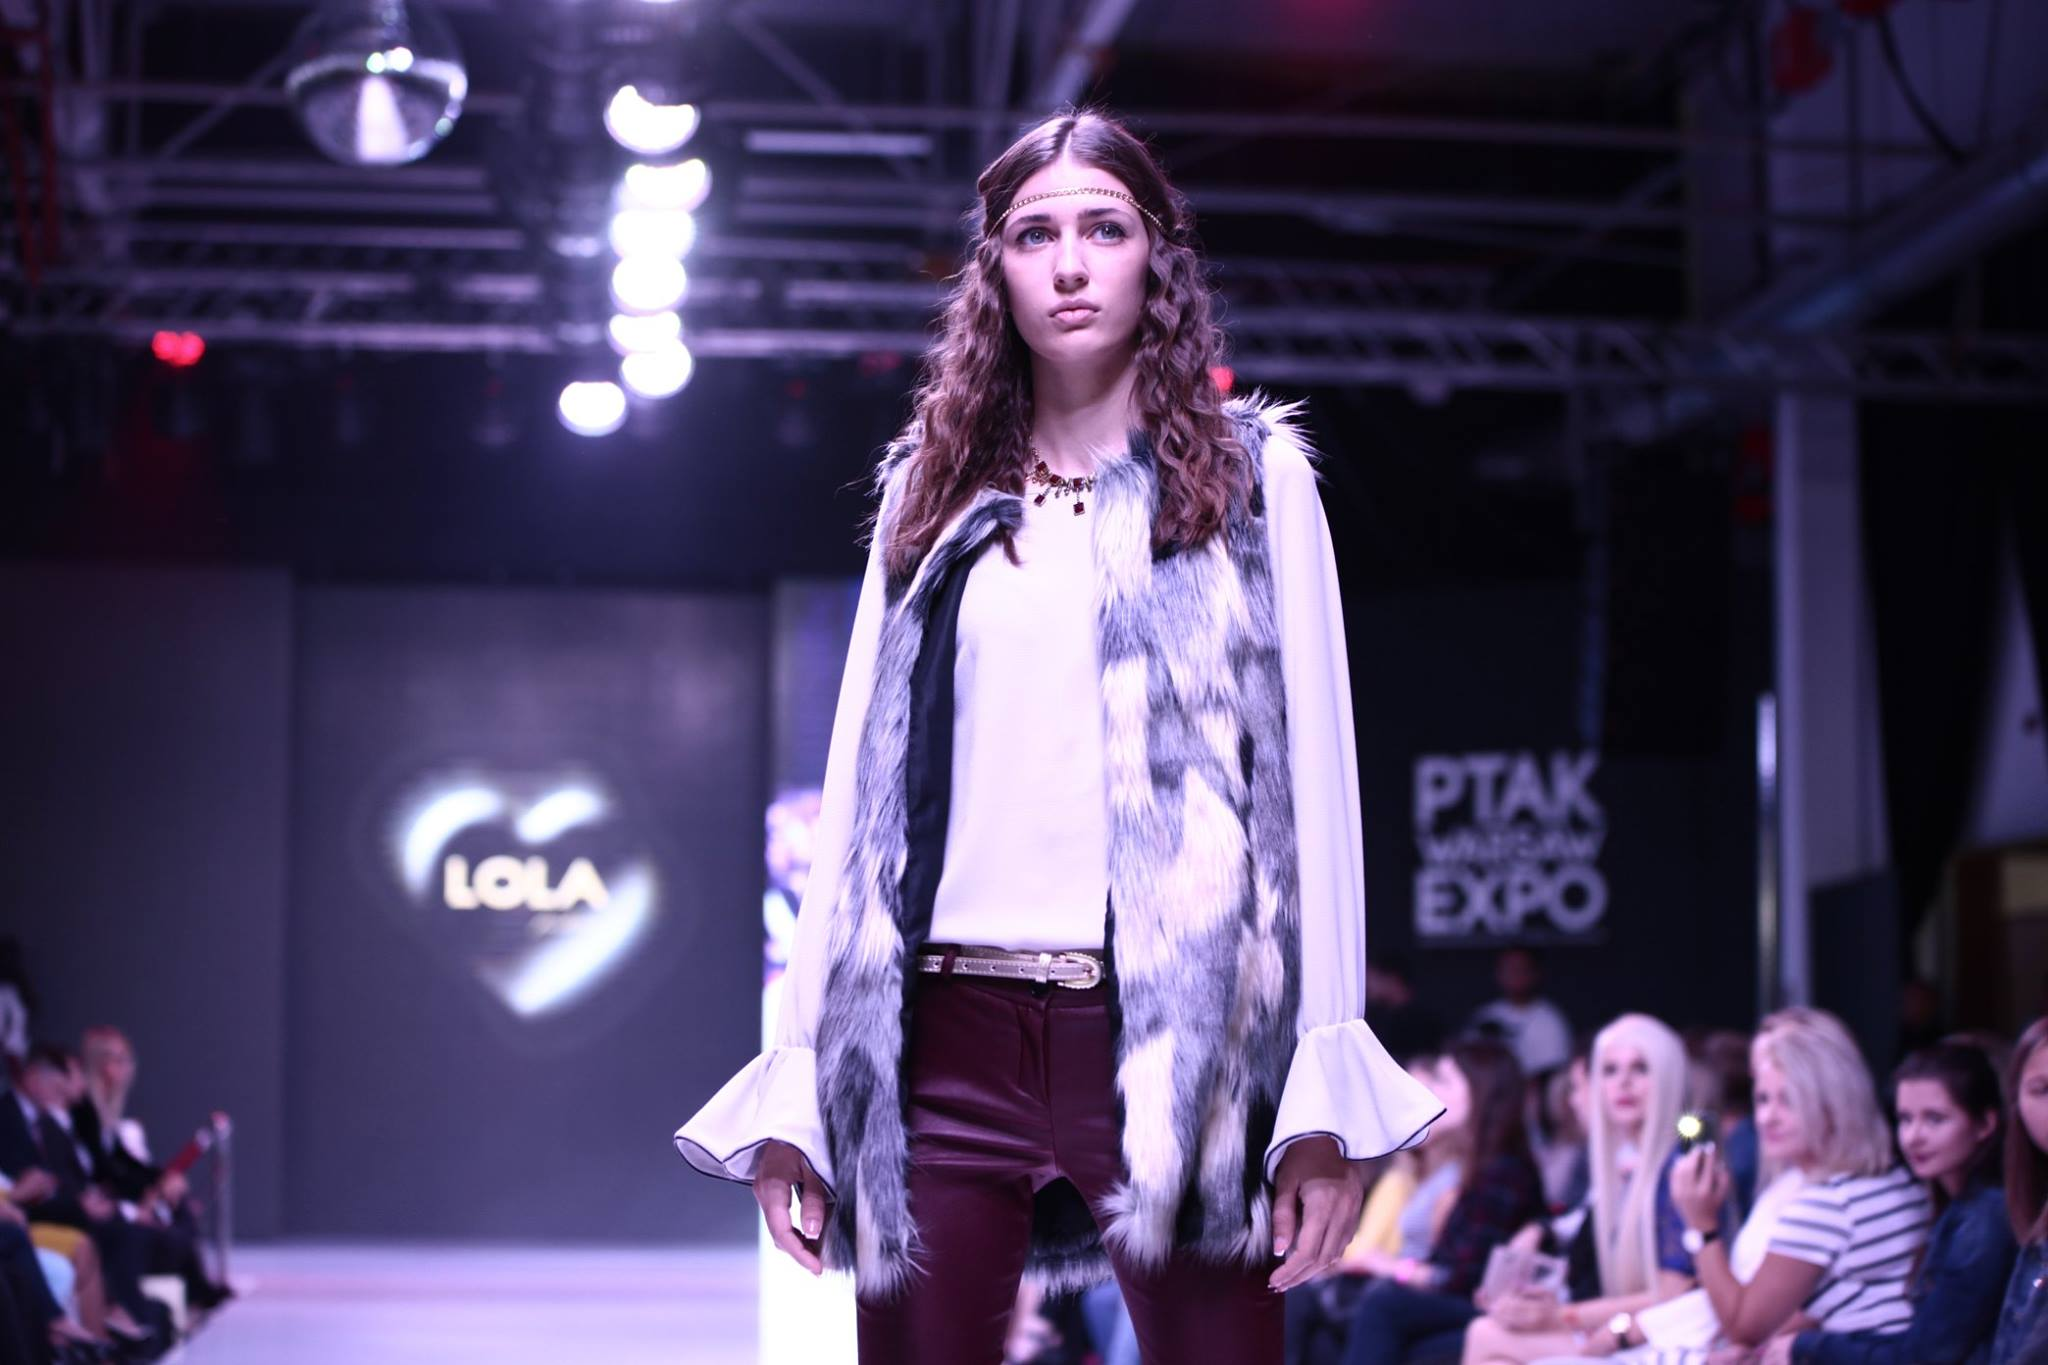 pokaz LOLA Fashion, fot. Warsaw Fashion Week